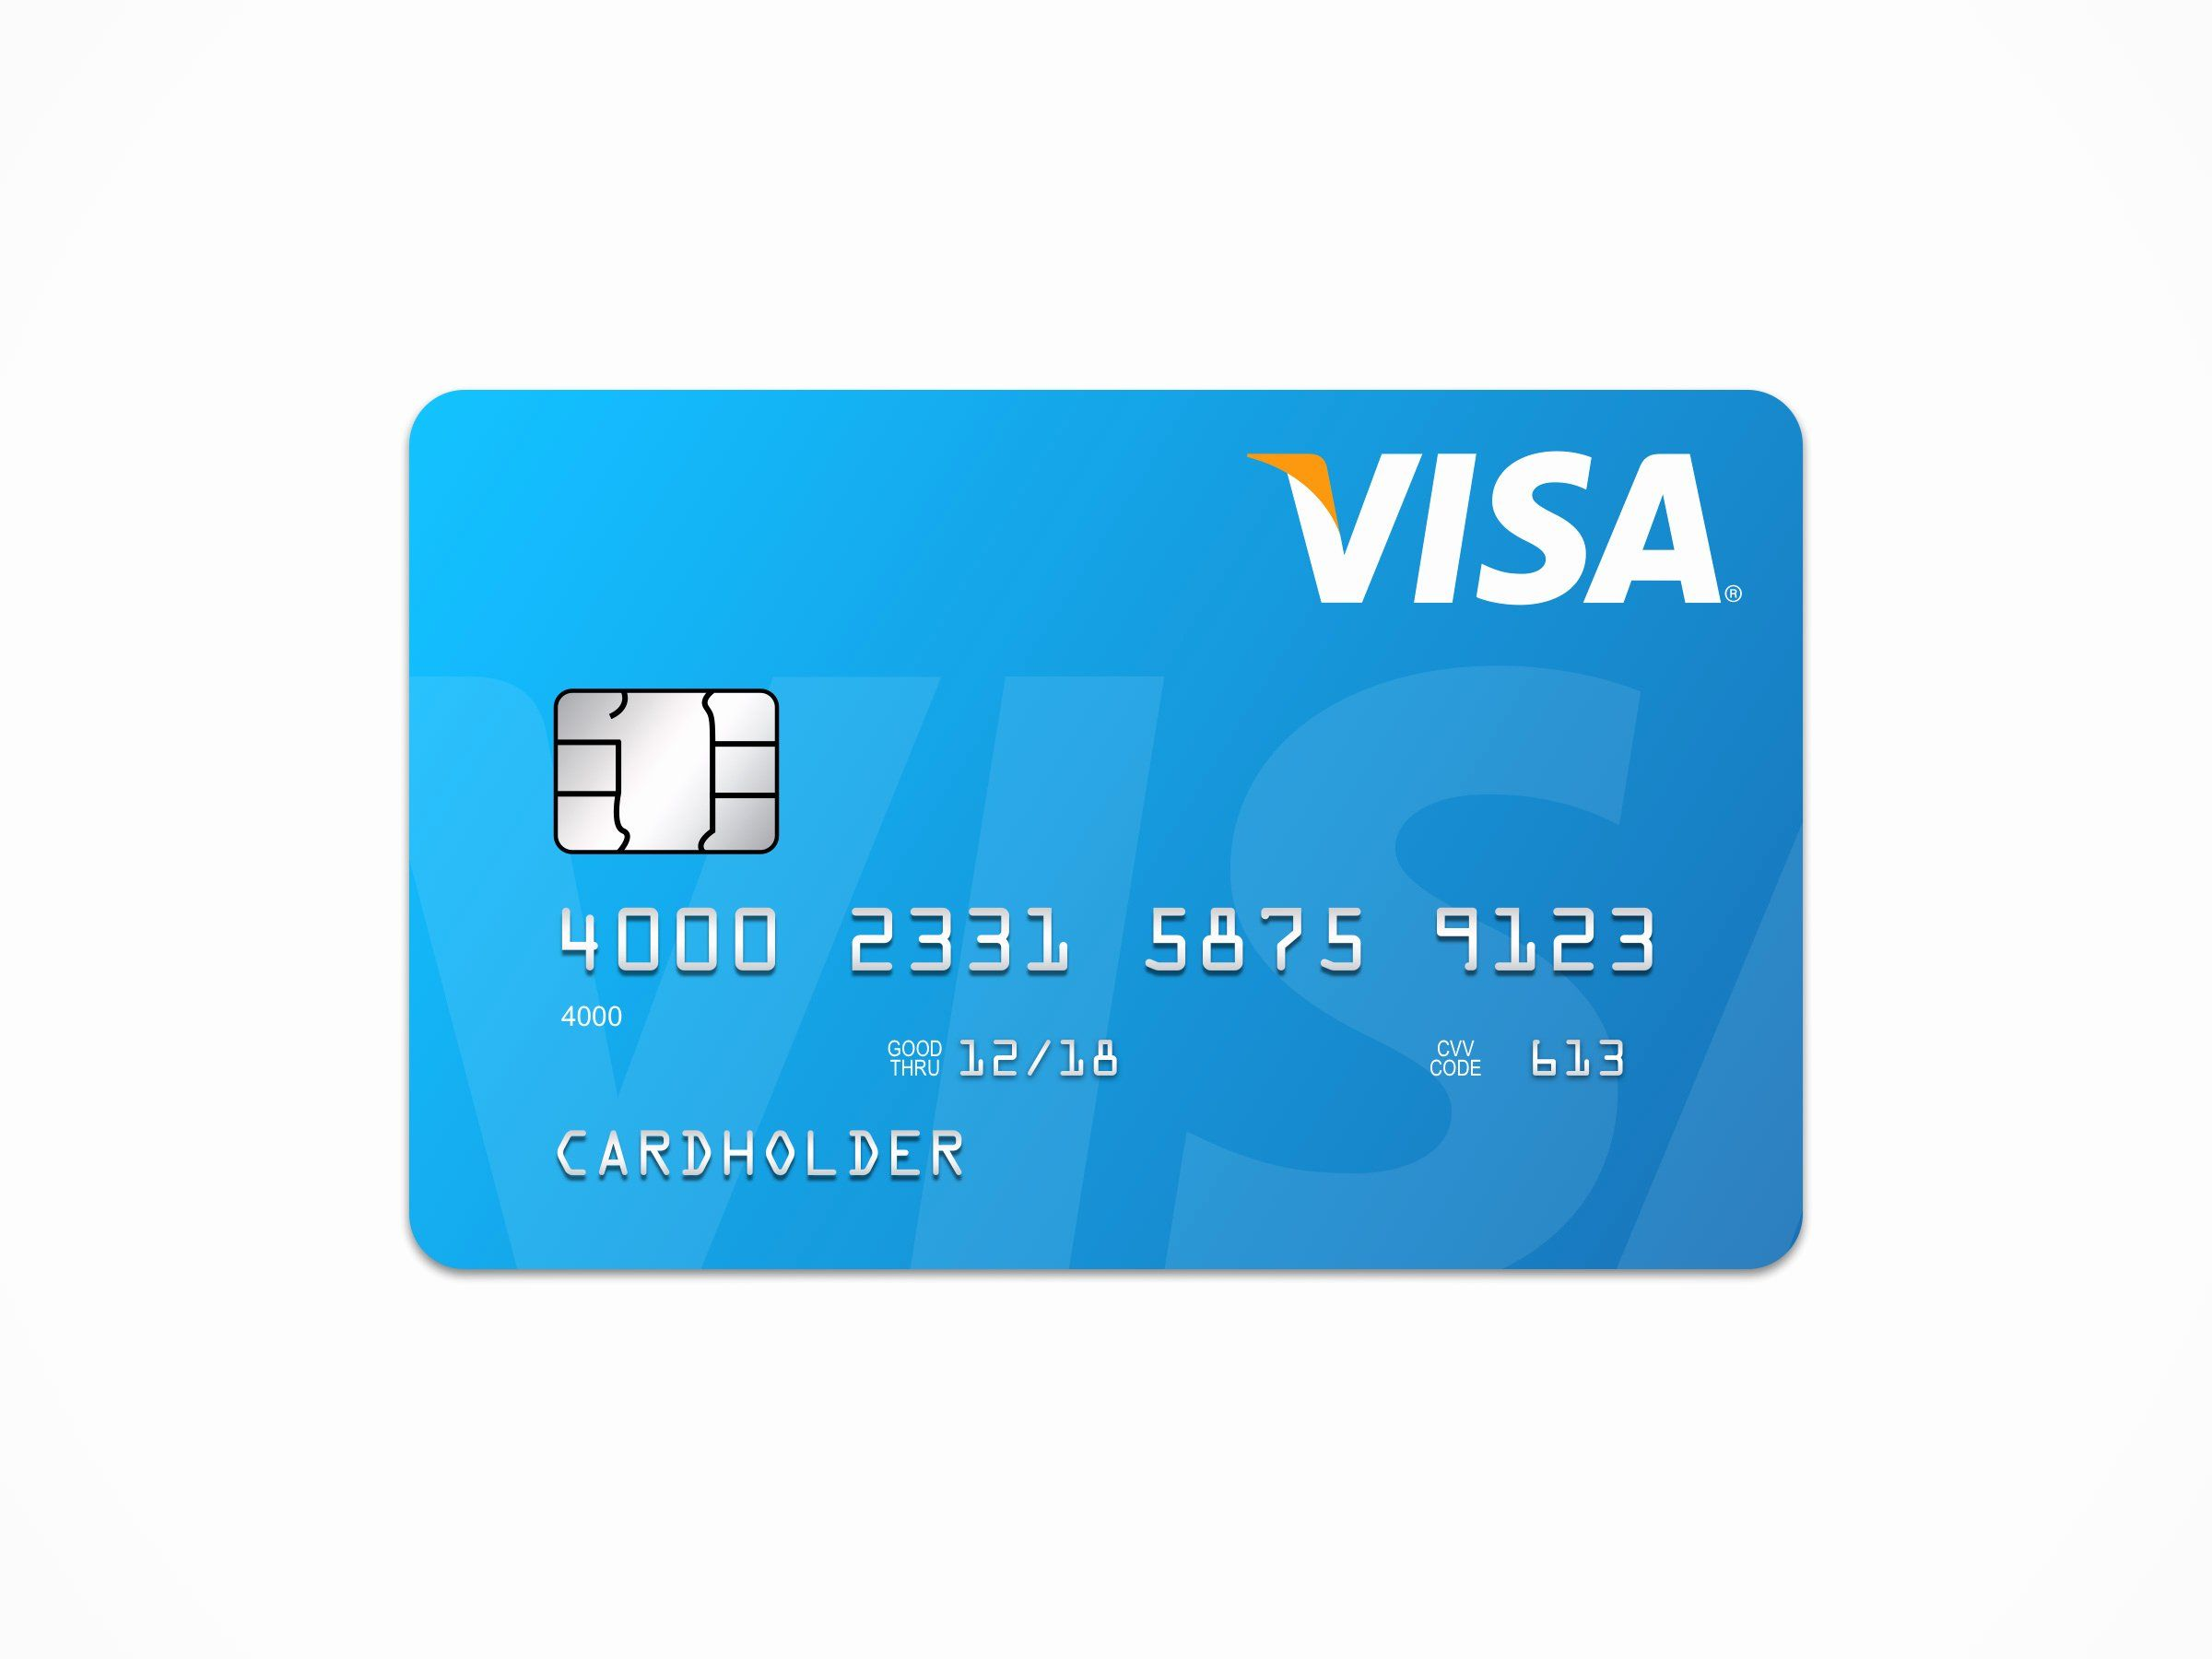 Visa Credit Card Template Lovely Visa Card Template Free Sketch Business Card Template Word Create Business Cards Business Cards Online